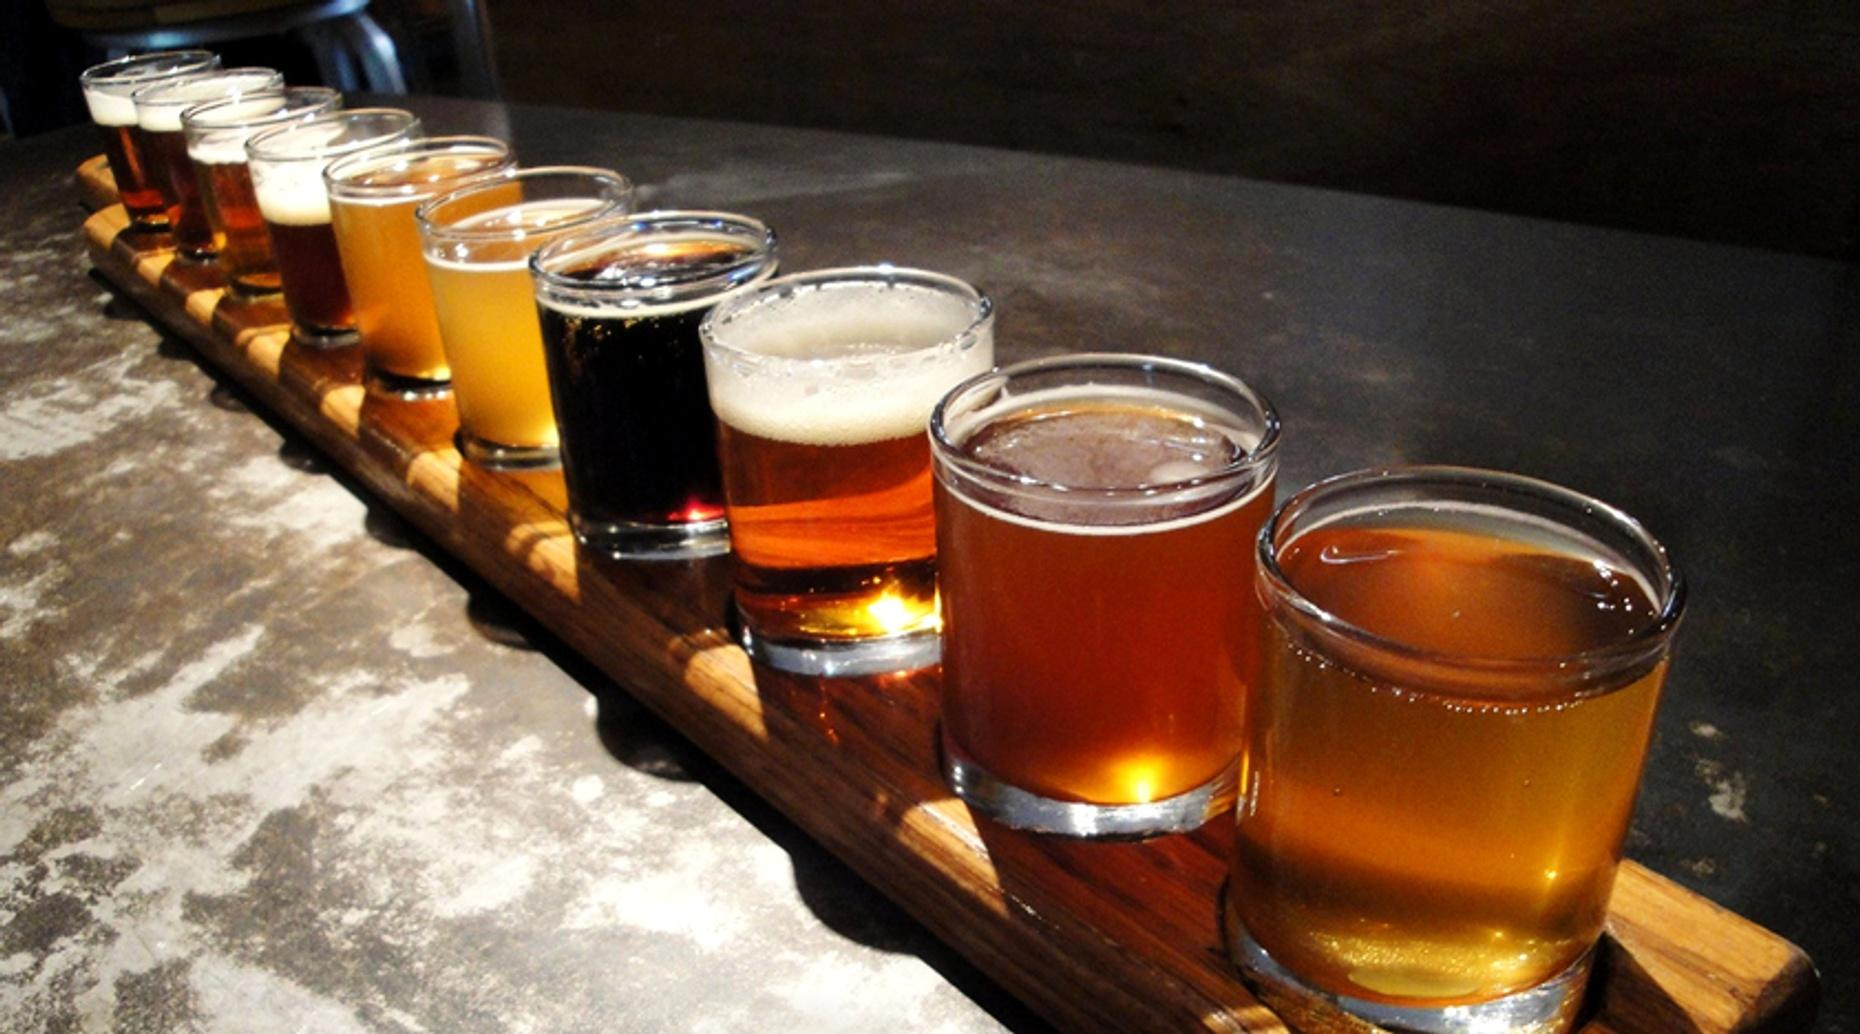 Brewery and Distillery Tour in Lexington